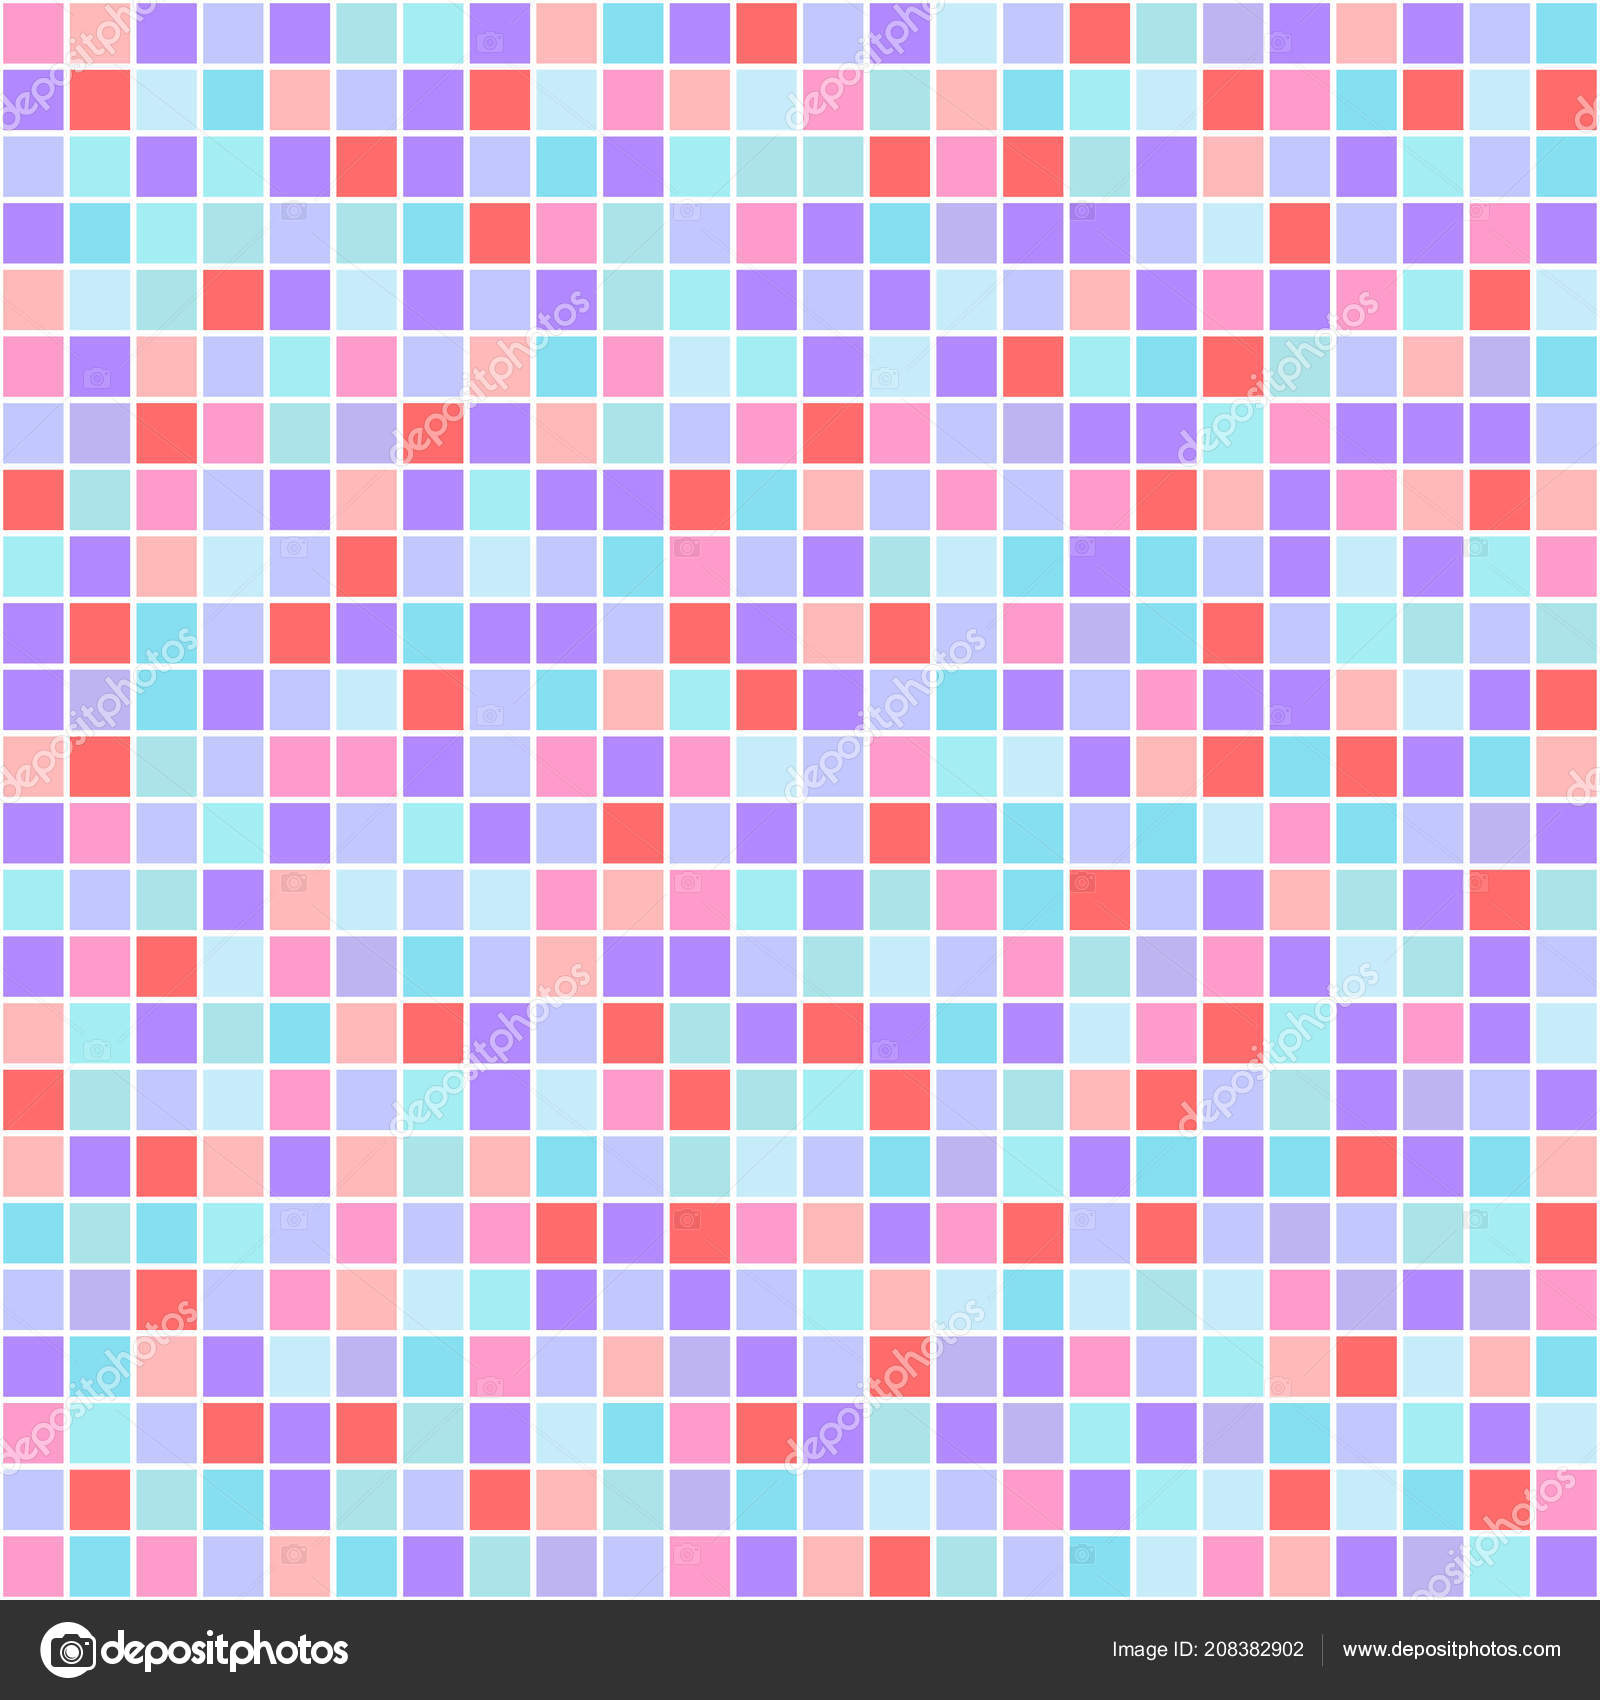 Tiles Texture Seamless Colorful - HD Wallpaper